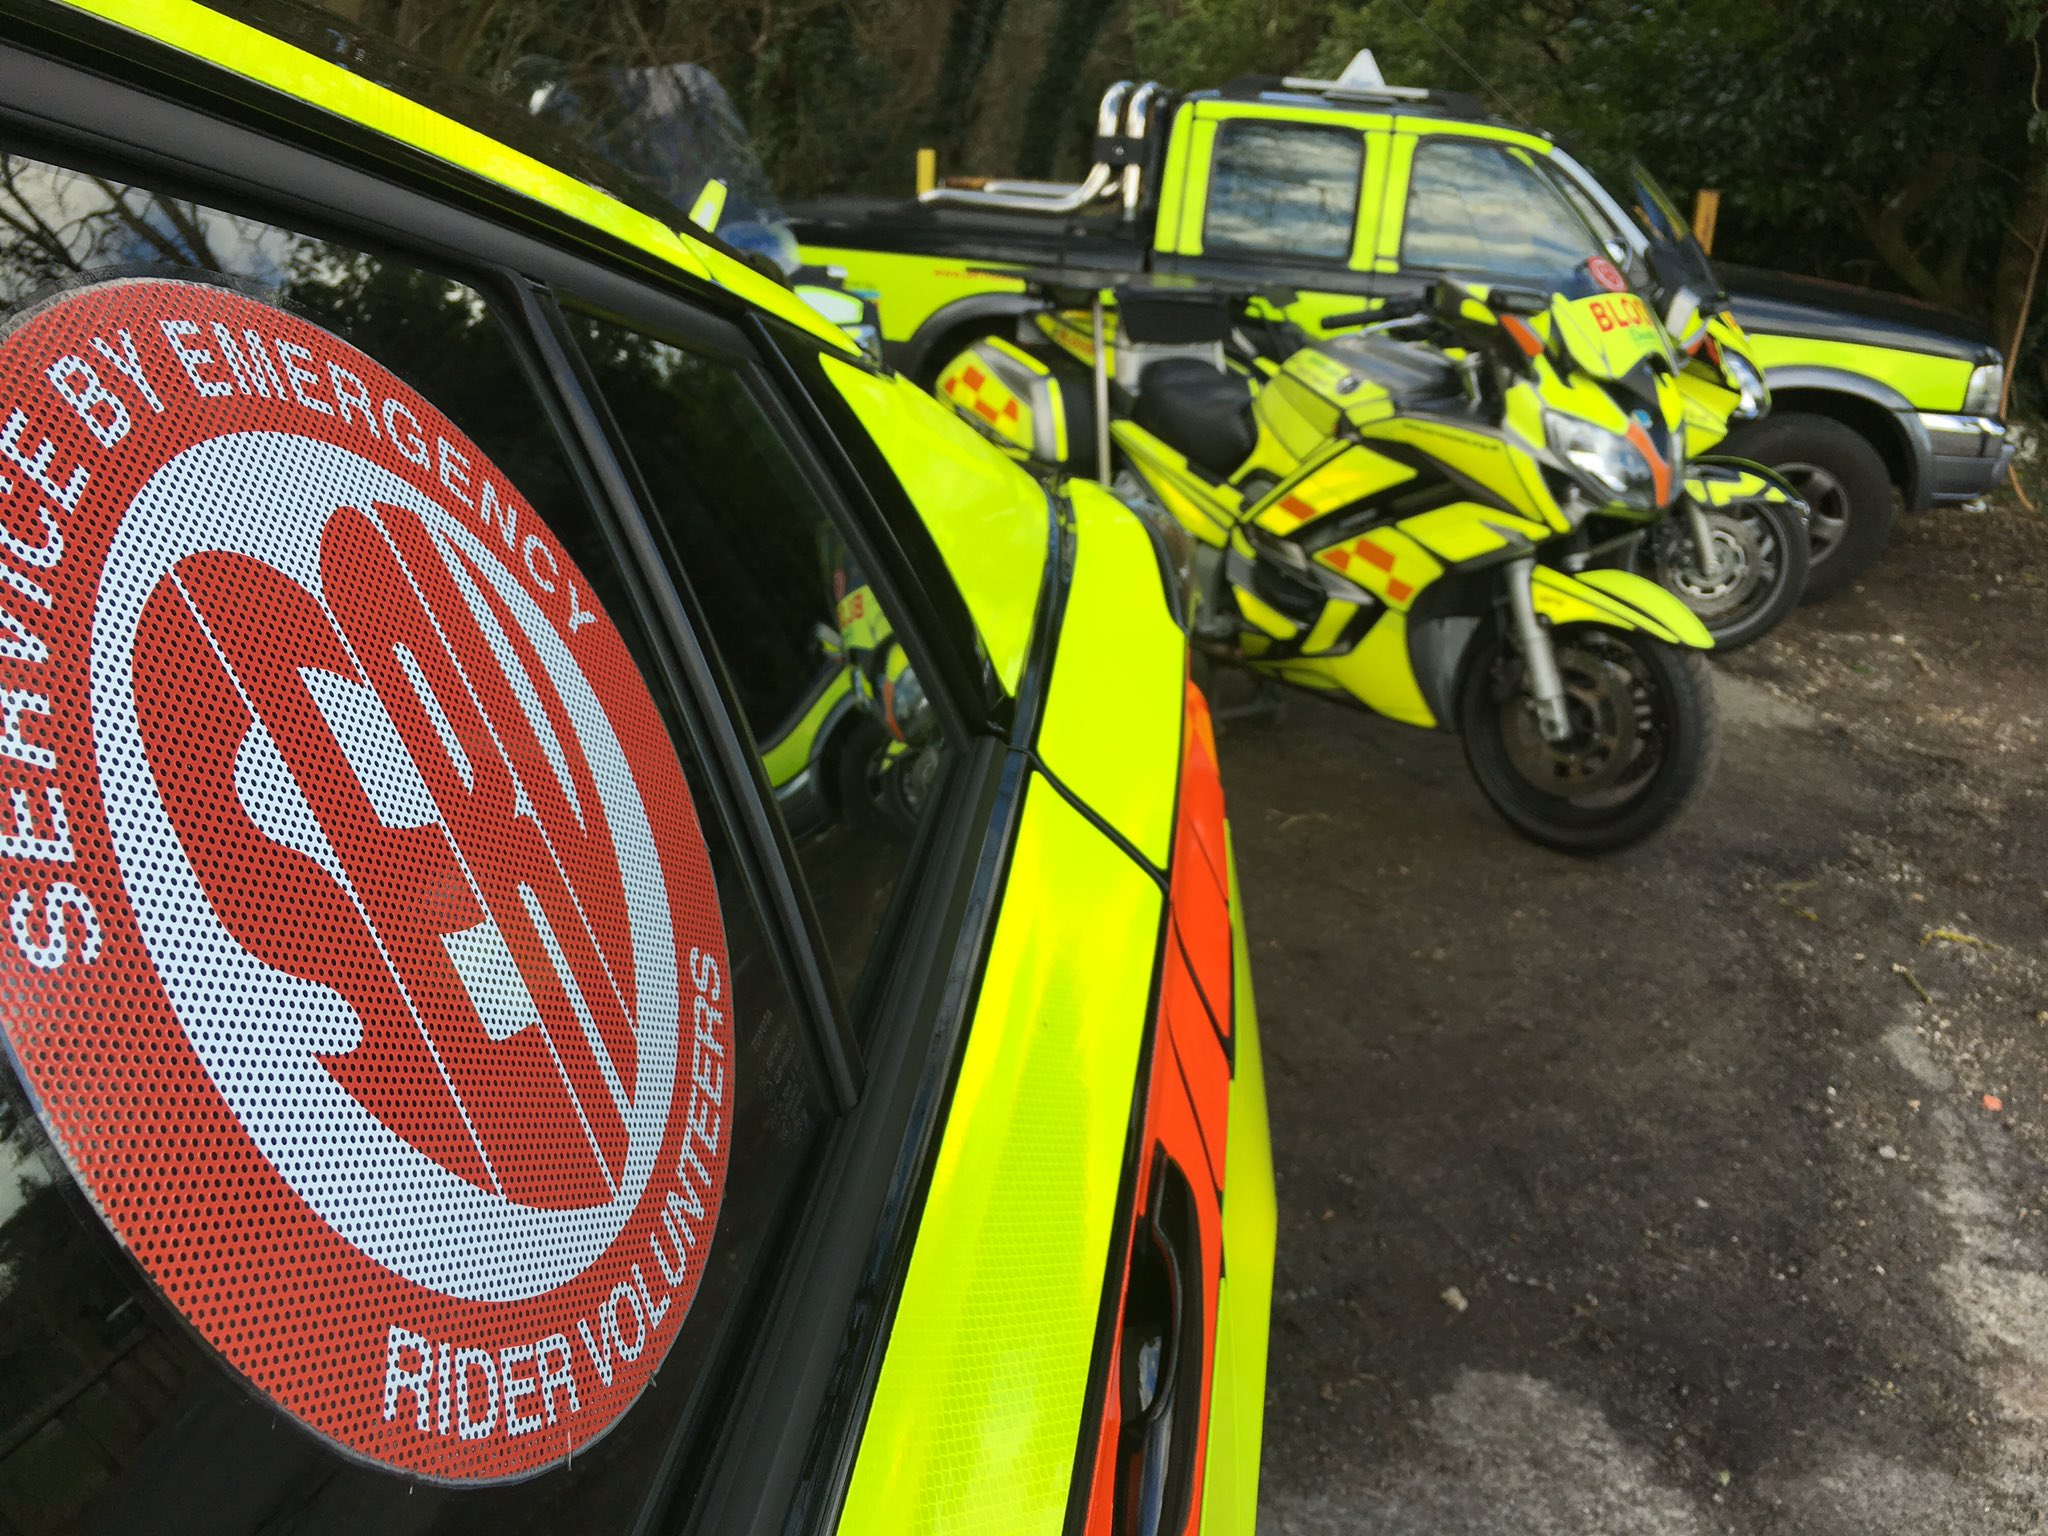 Service by Emergency Rider Volunteers (SERV) Sussex